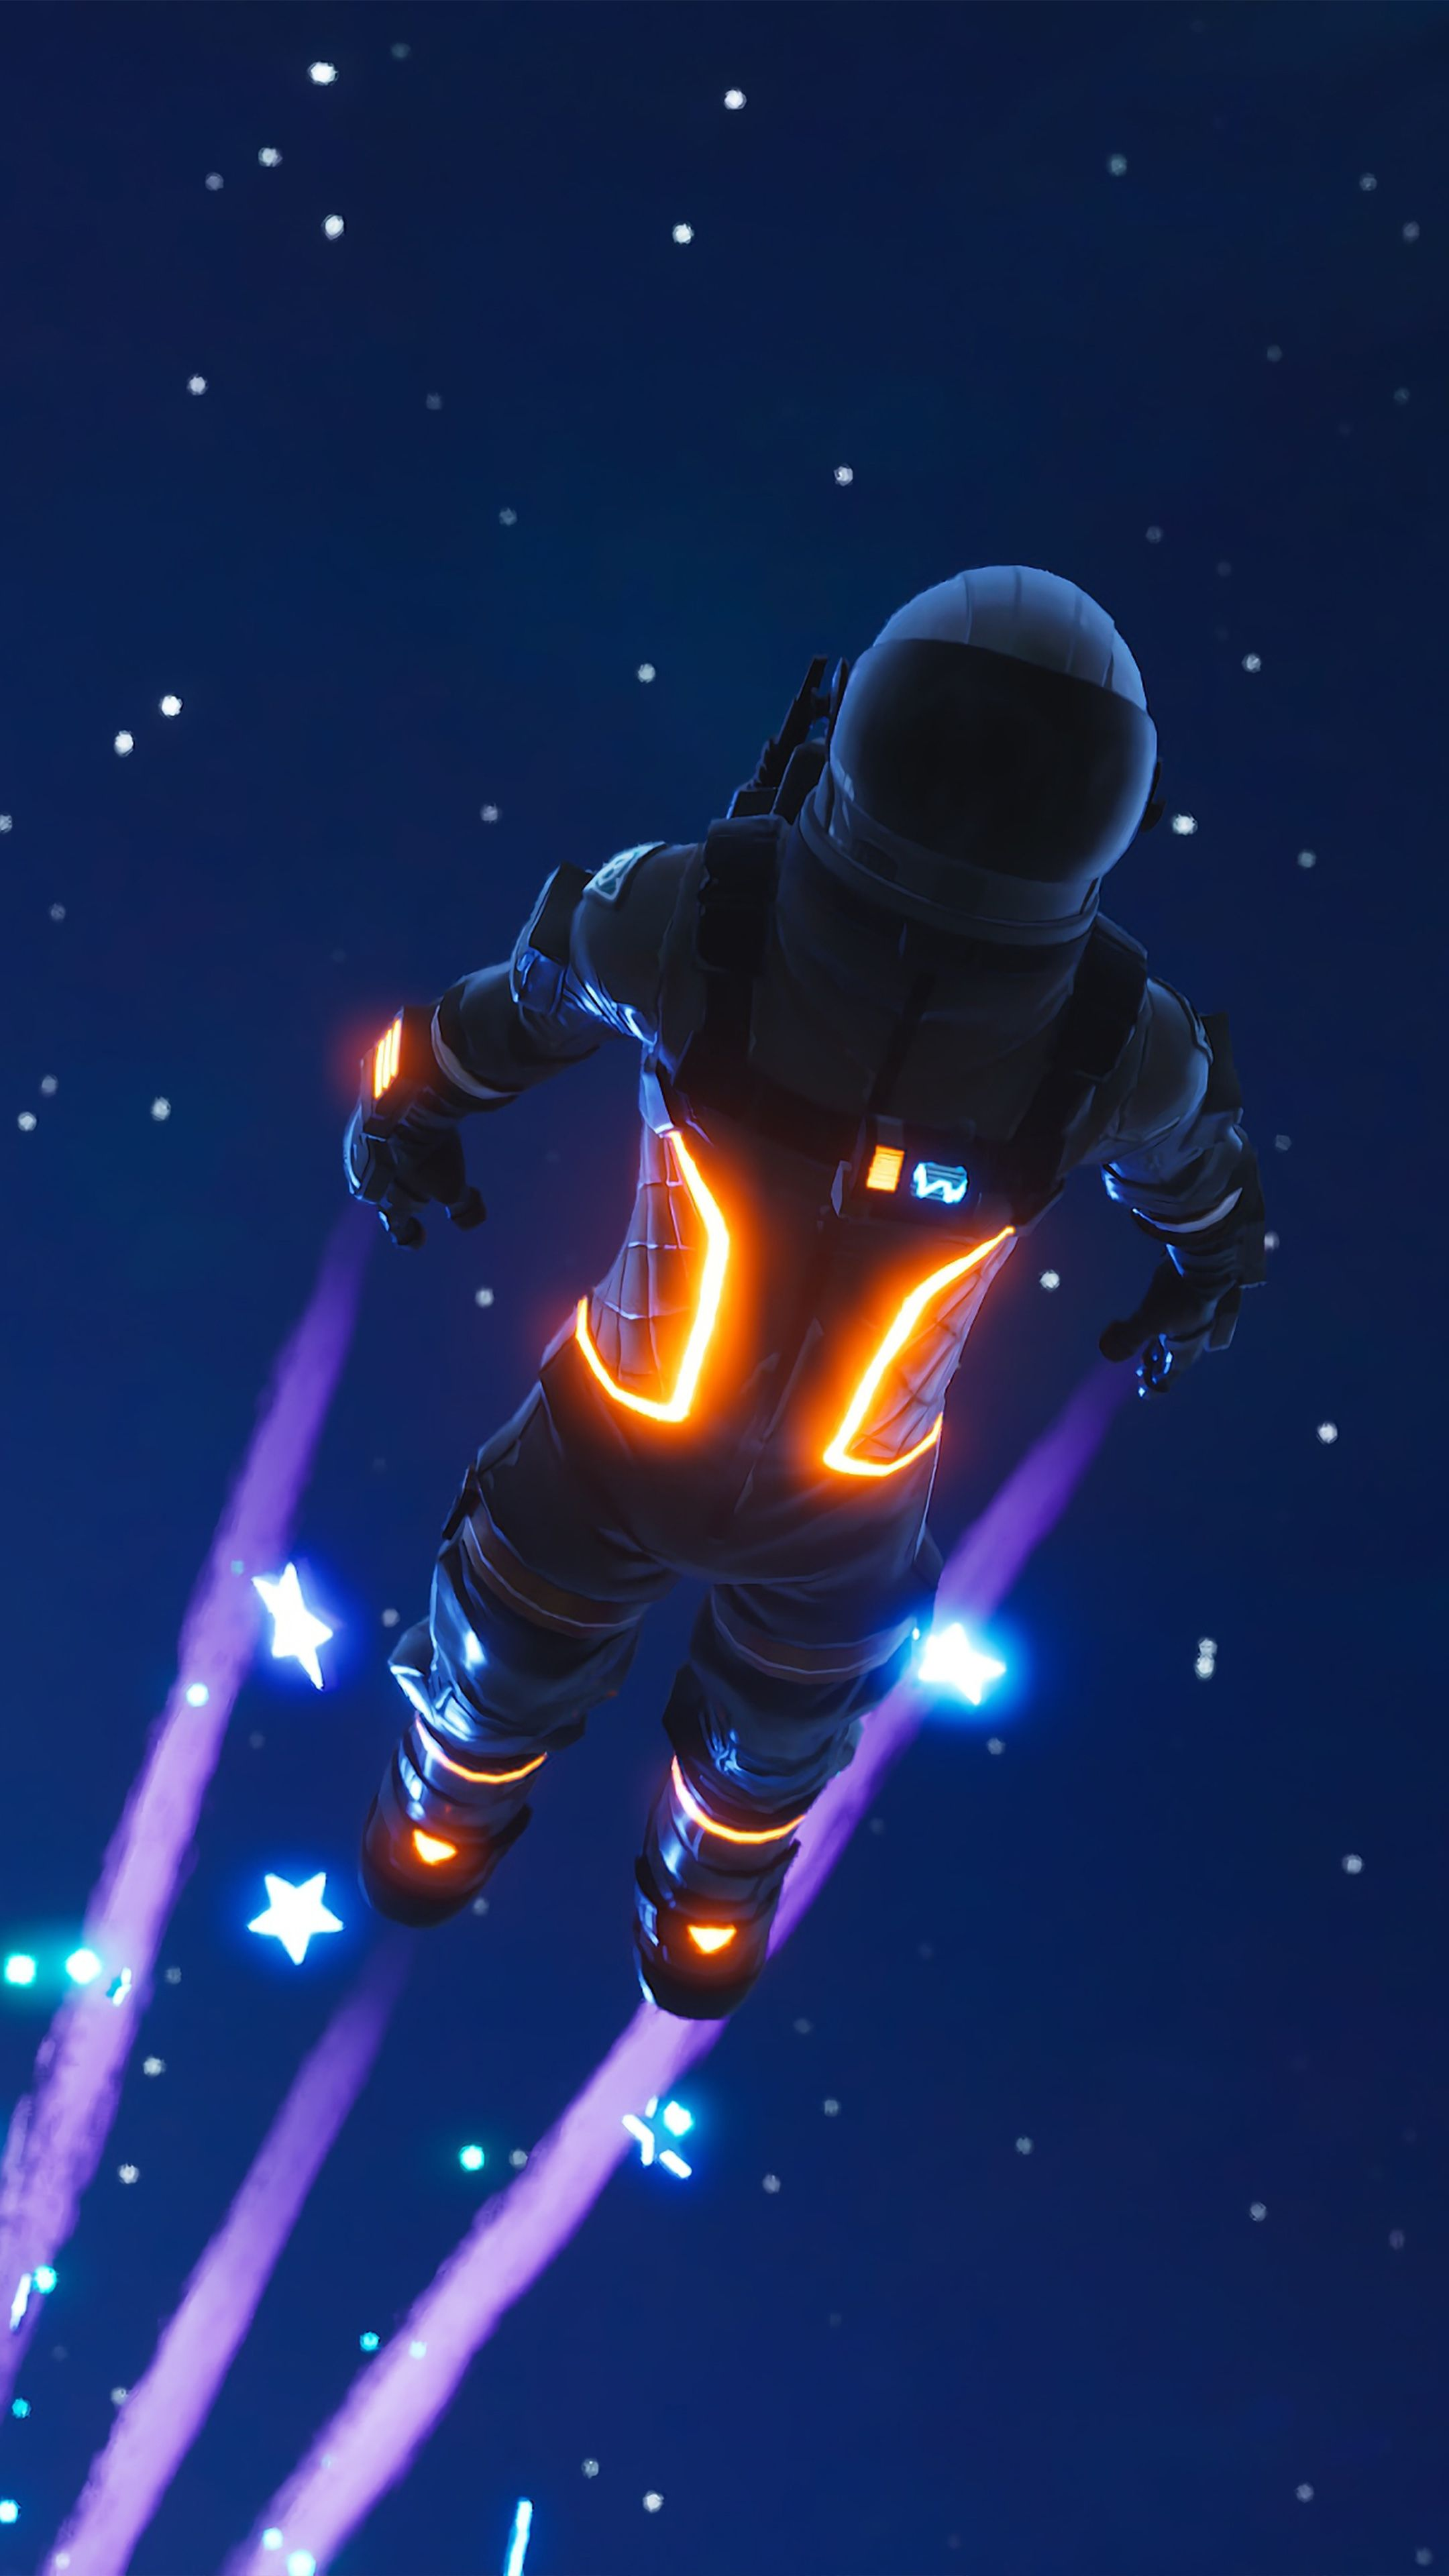 Dark Voyager Fortnite Battle Royale Free 4K Ultra HD Mobile Wallpapers